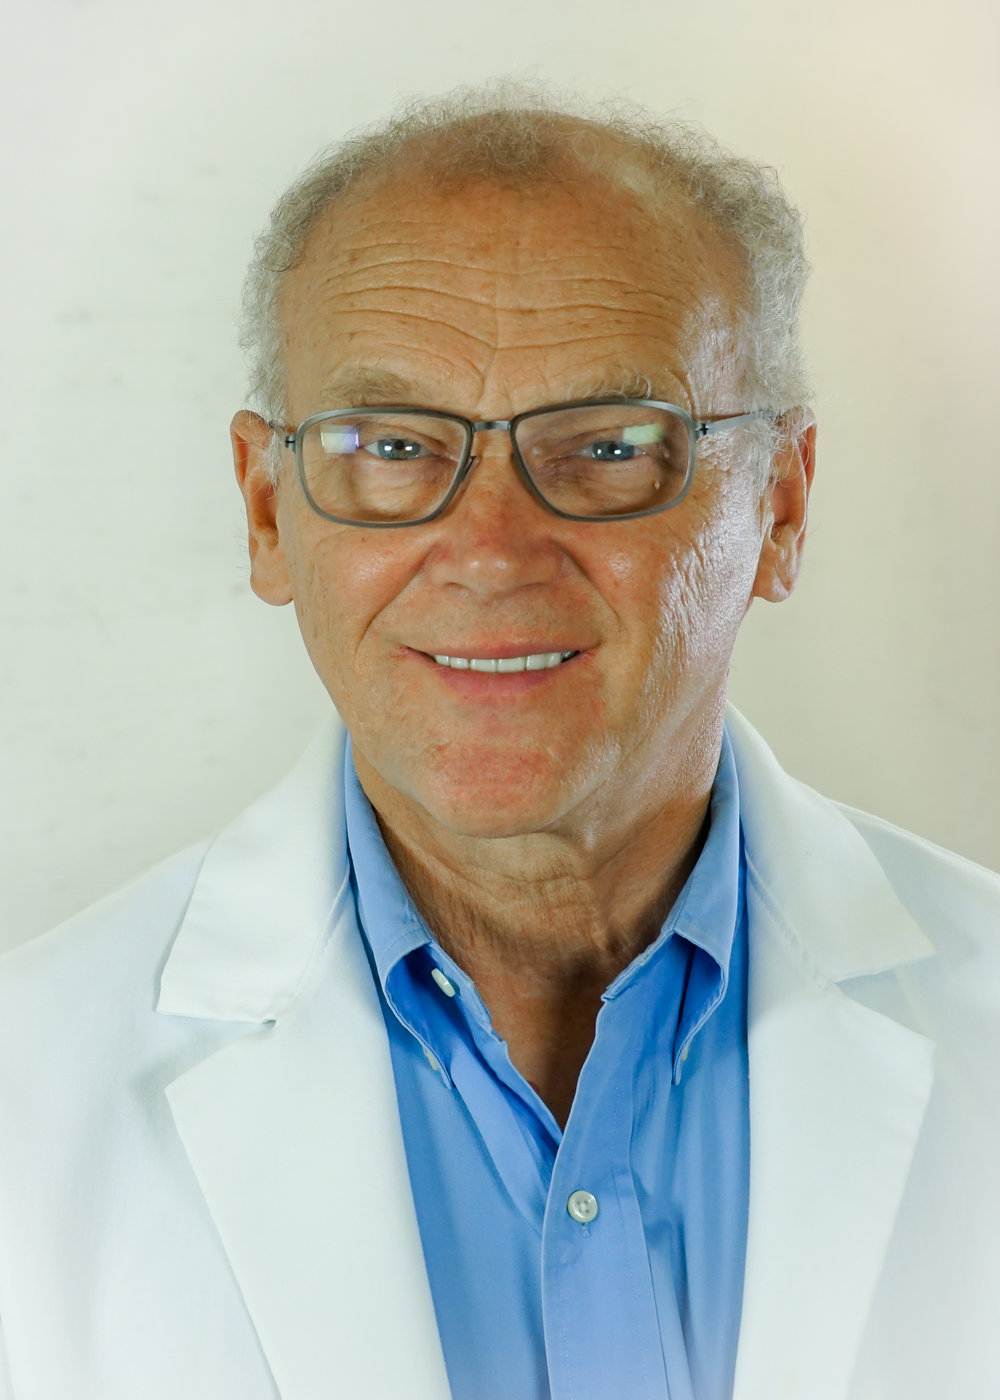 Founding practitioner, Dr. Peter Kadar